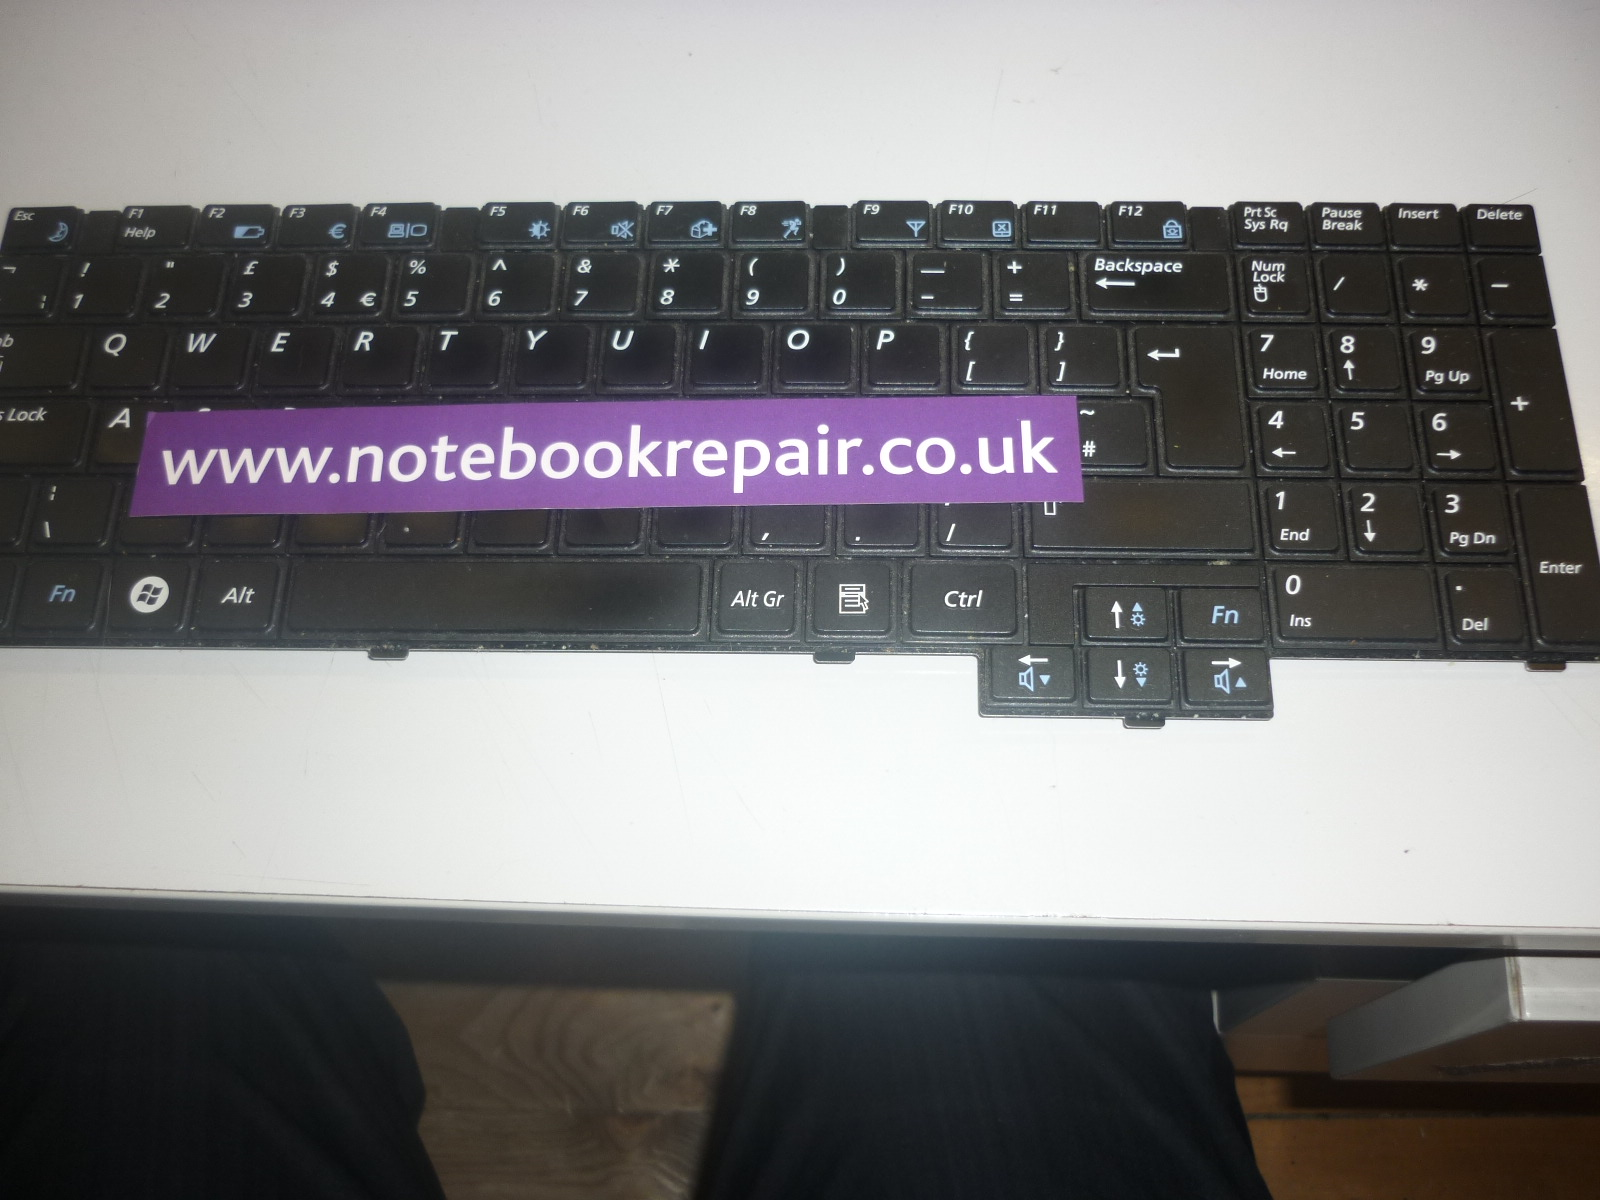 BA59-02833A E352 452 P530 P580 etc UK Keyboard